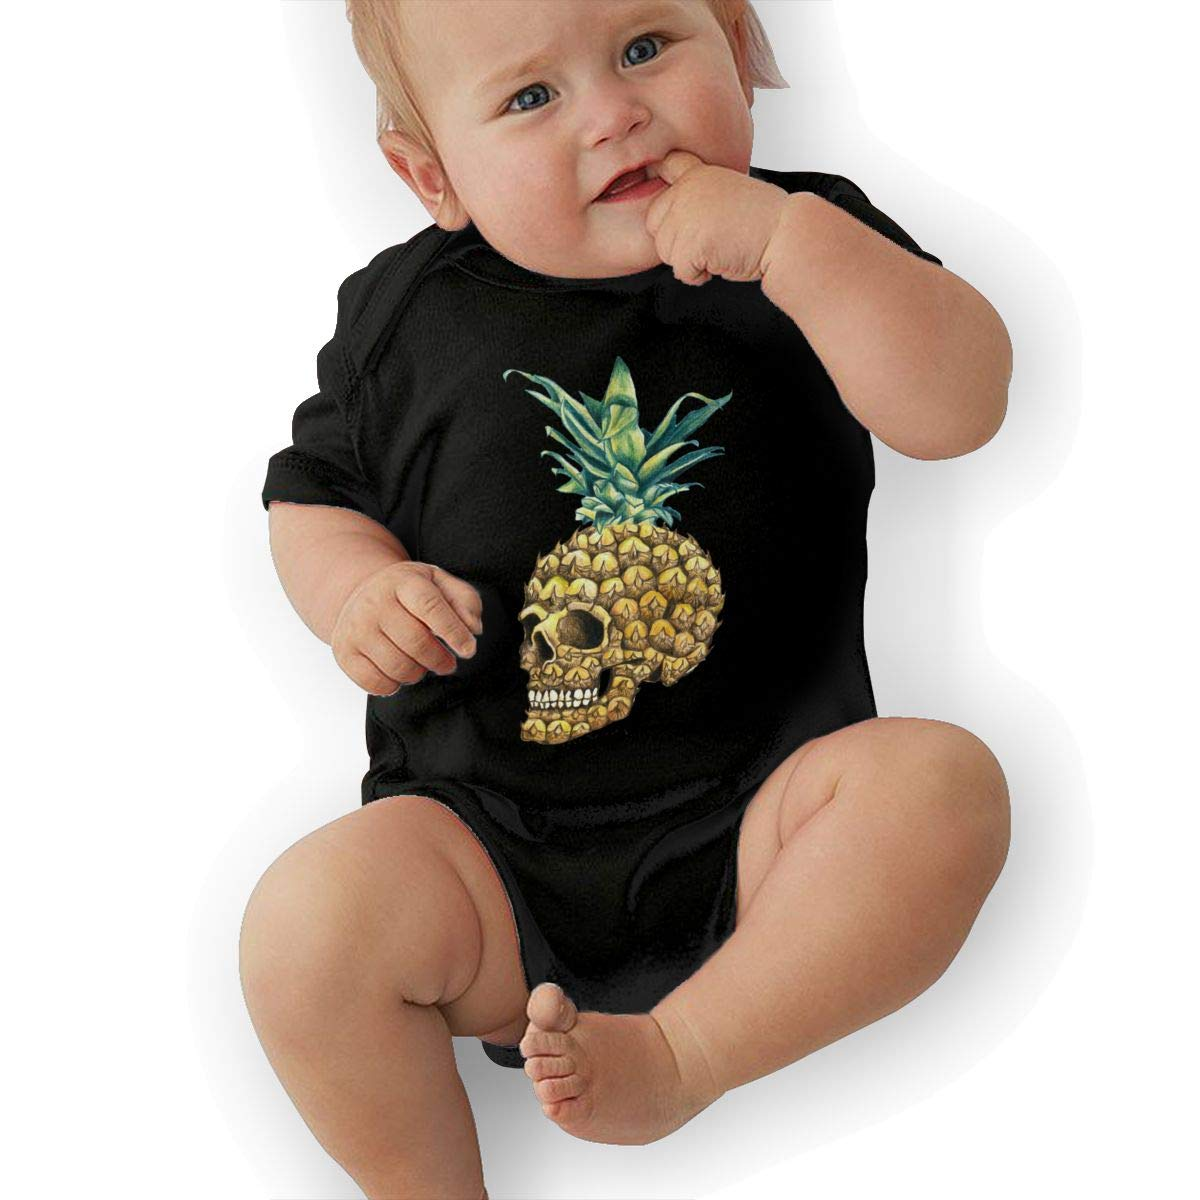 BONLOR Pineapple Skull Baby Rompers One Piece Jumpsuits Summer Outfits Clothes Black